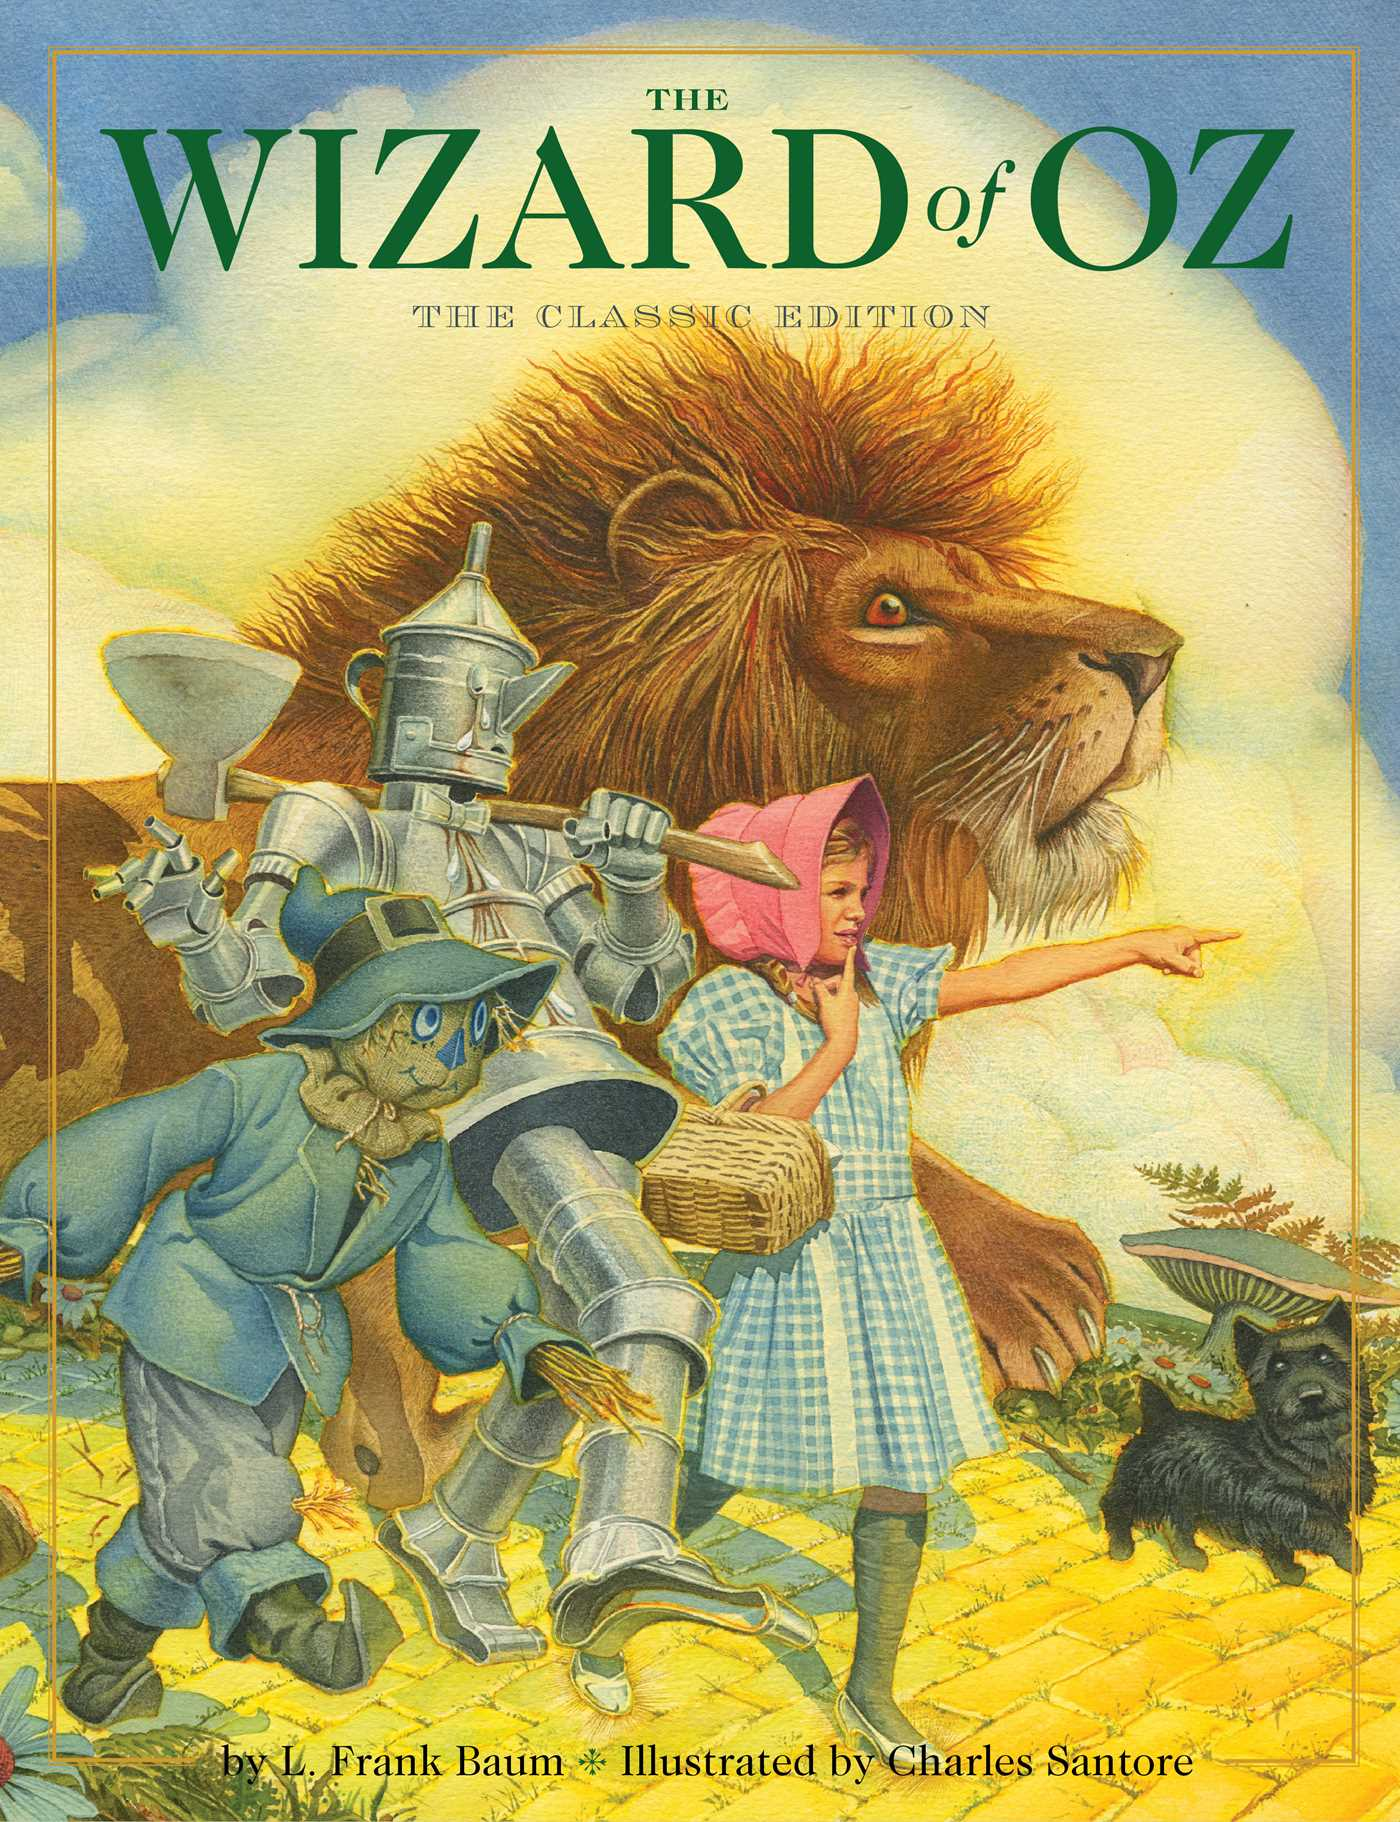 The Wizard of Oz | Book by L. Frank Baum, Charles Santore ...